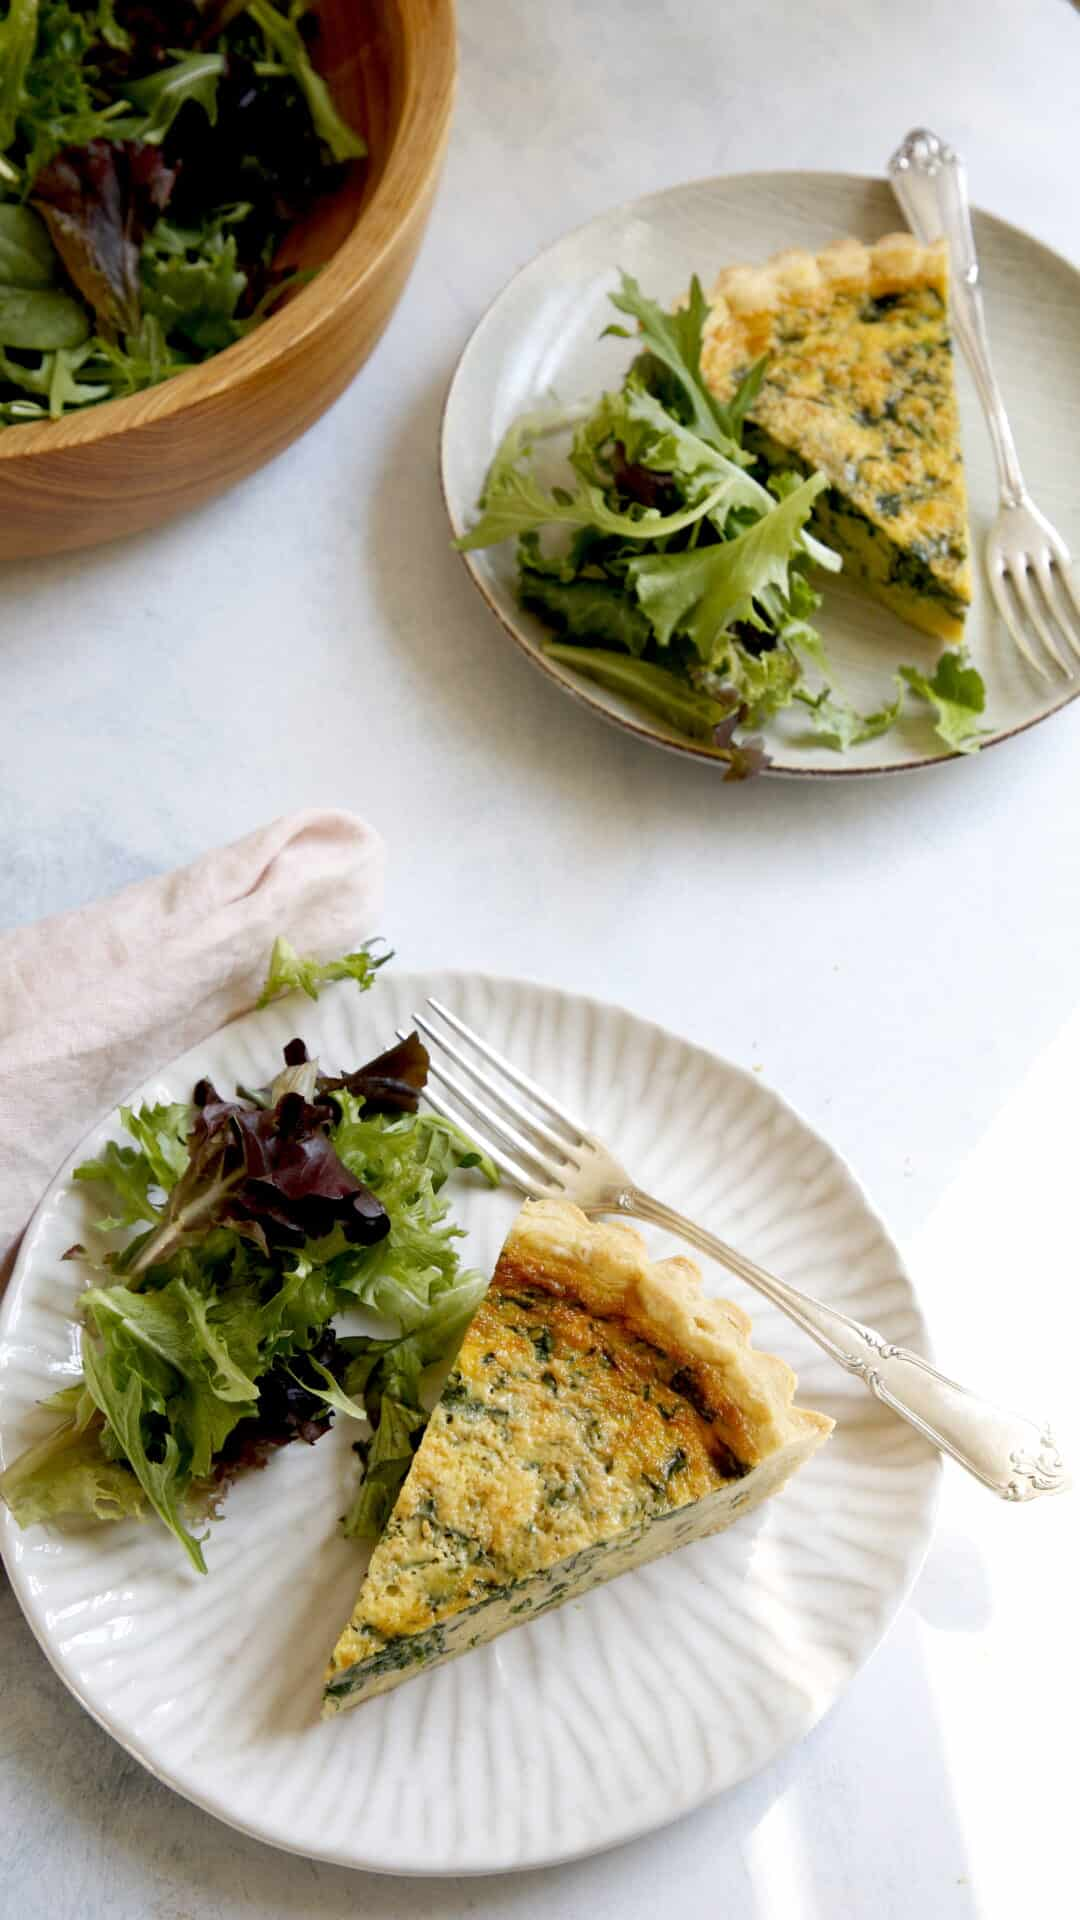 @ slices of Spinach Quiche on a plate with salad